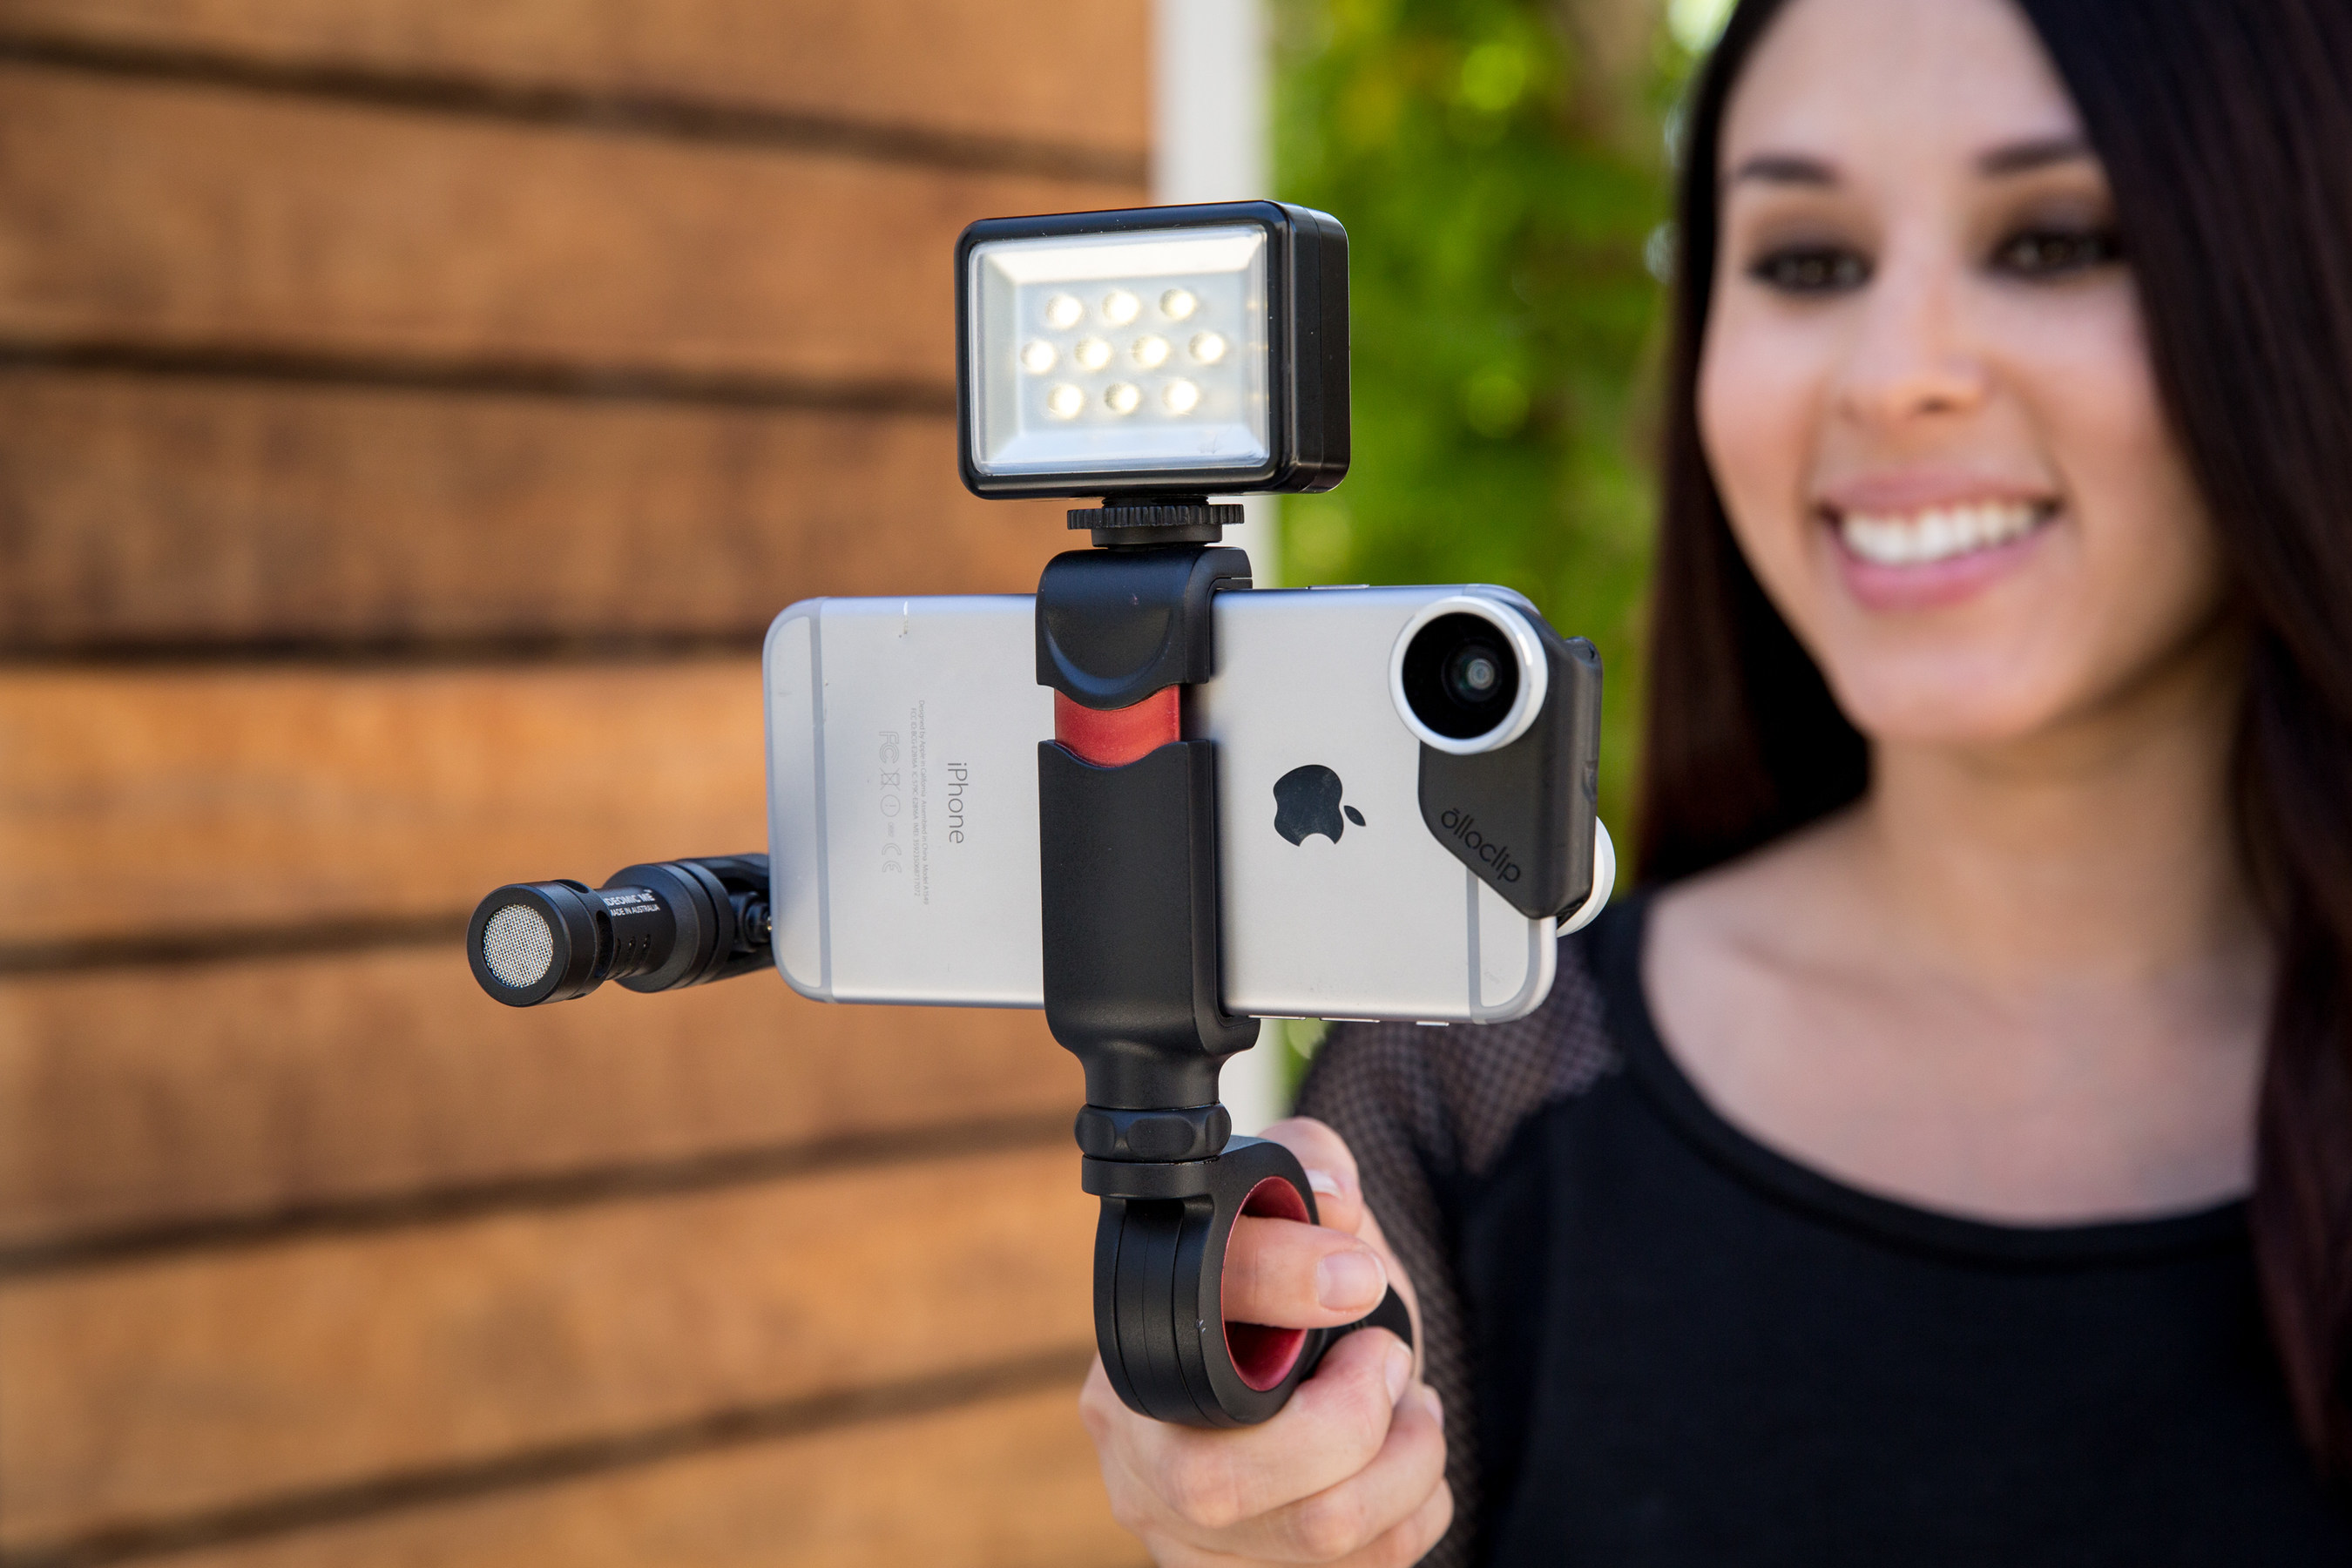 Olloclip Announces Its All New Pivot A Compact Articulating Grip Optimized For Mobile Videography